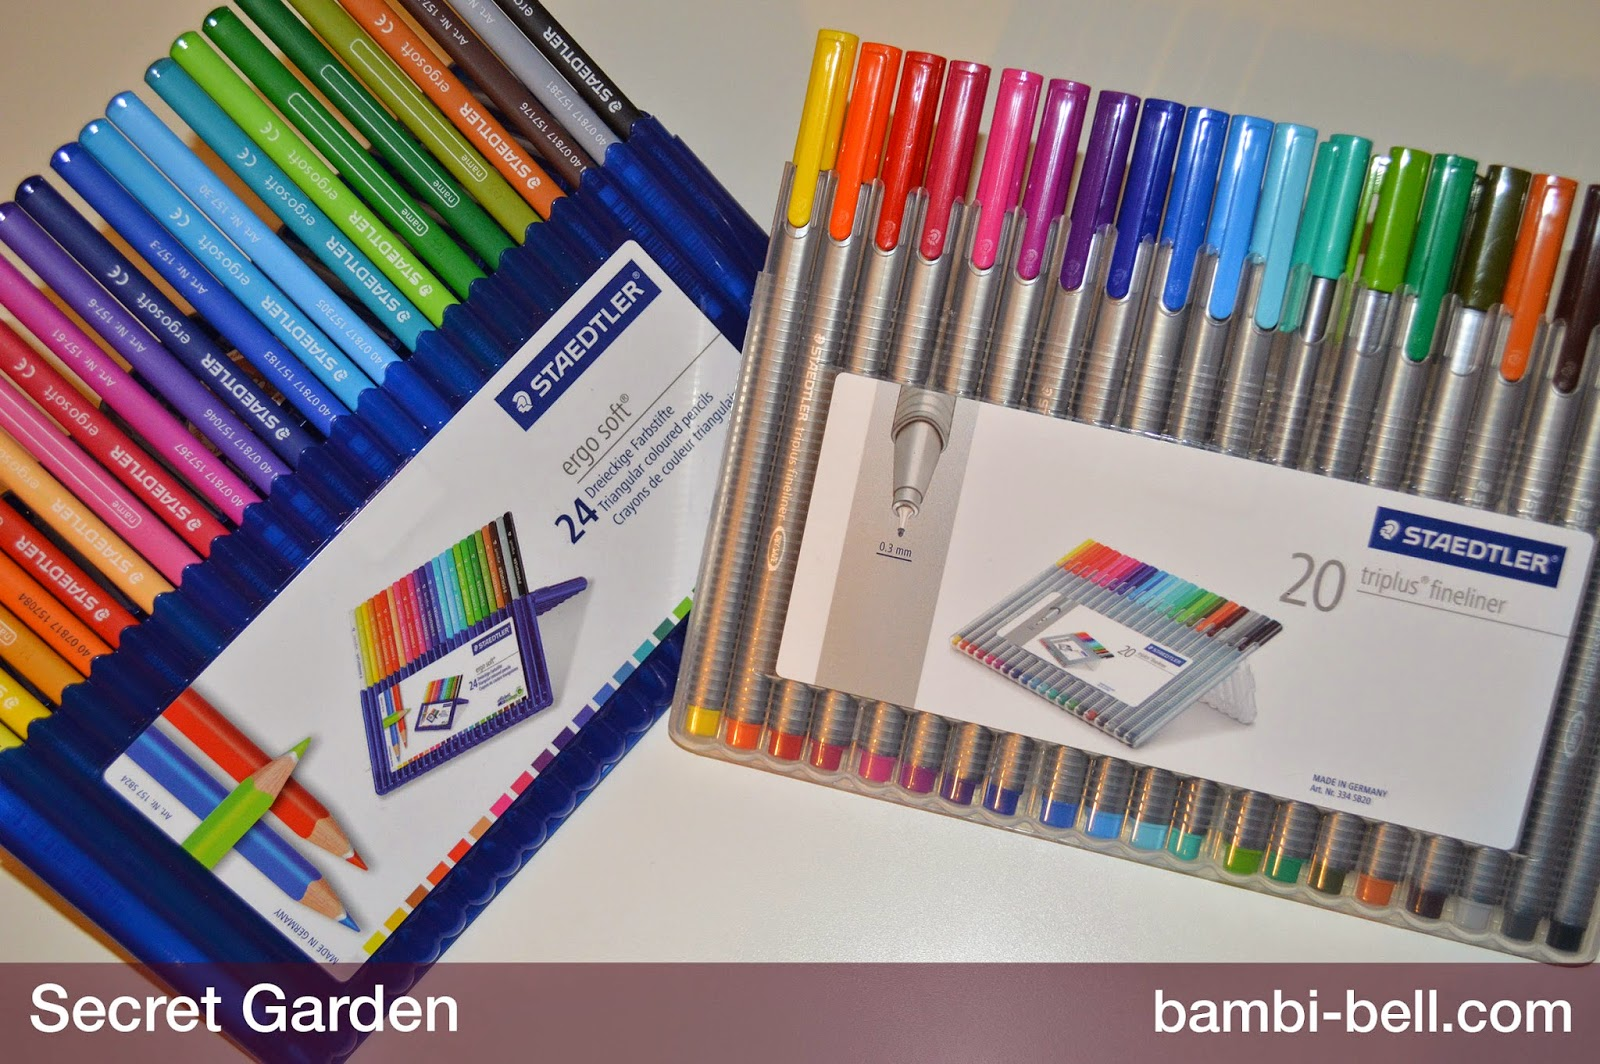 The Above Picture Shows Both Pen And Pencil Sets I Use For Everything To Do With Colouring Pens Were A Firm Favourite Of Mine While Was At Uni So